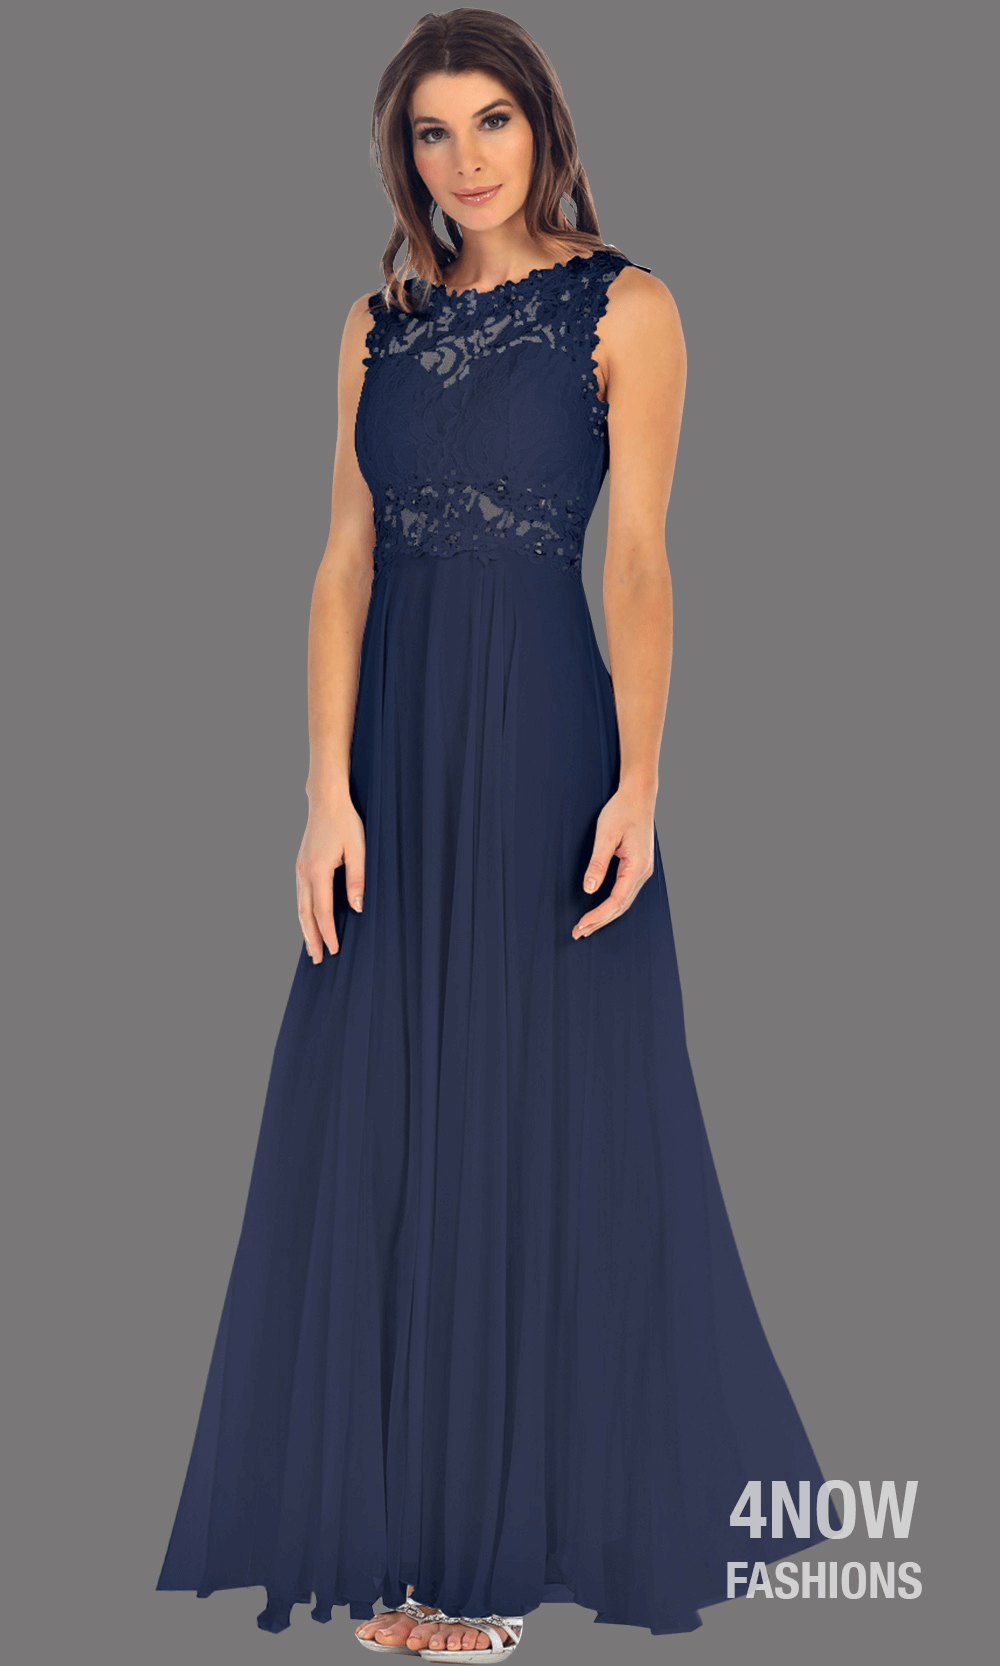 Long Navy High Neck Dress with Chiffon A-line Skirt